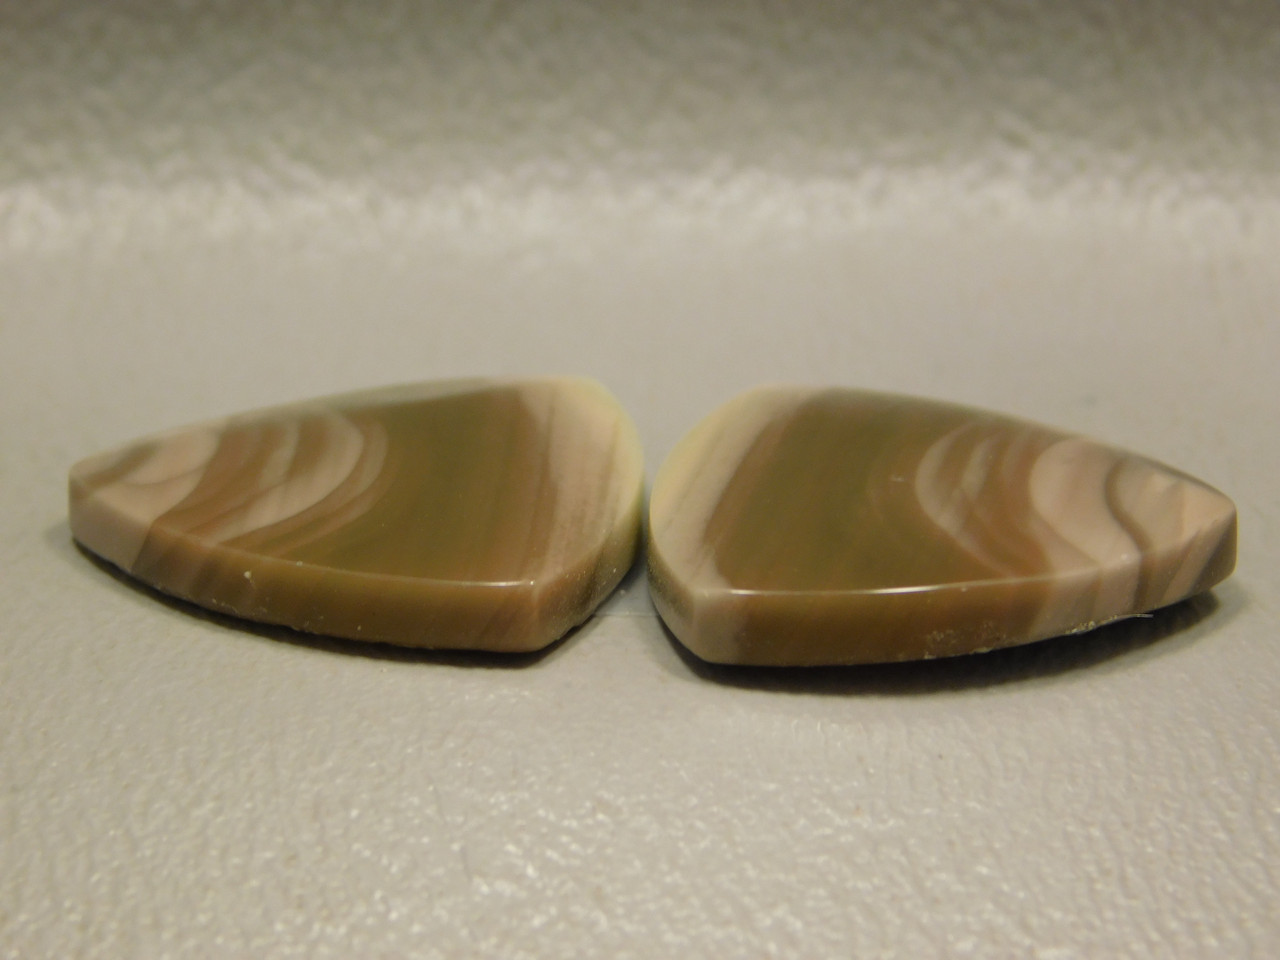 Royal Imperial Jasper Cabochon Stones Matched Pair 20 mm Triangles #23